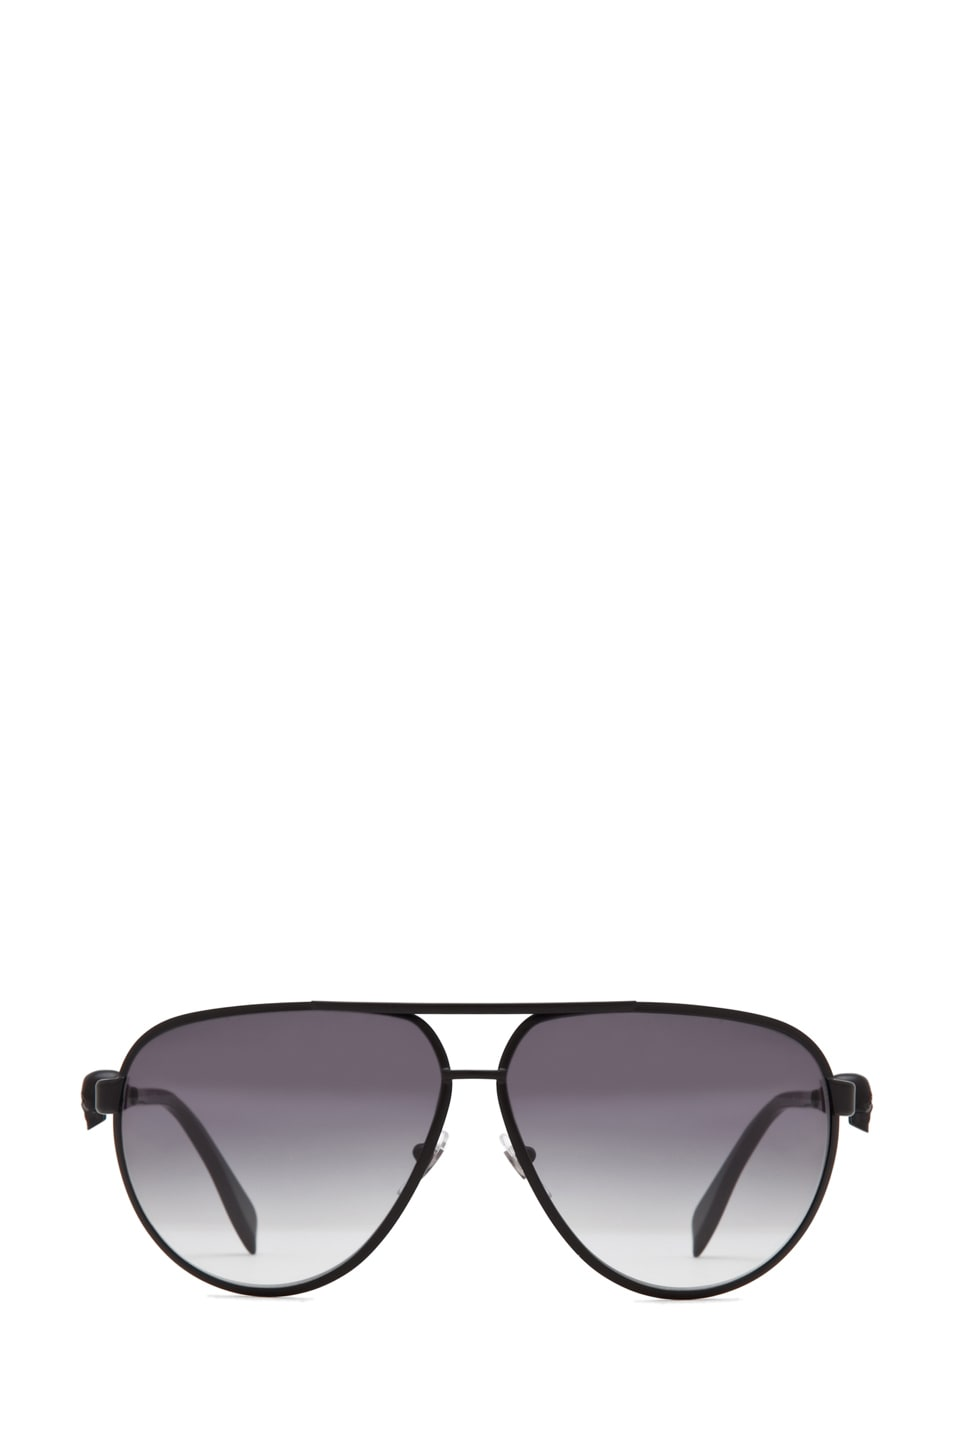 Image 1 of Alexander McQueen 4156 Sunglasses in Matte Black